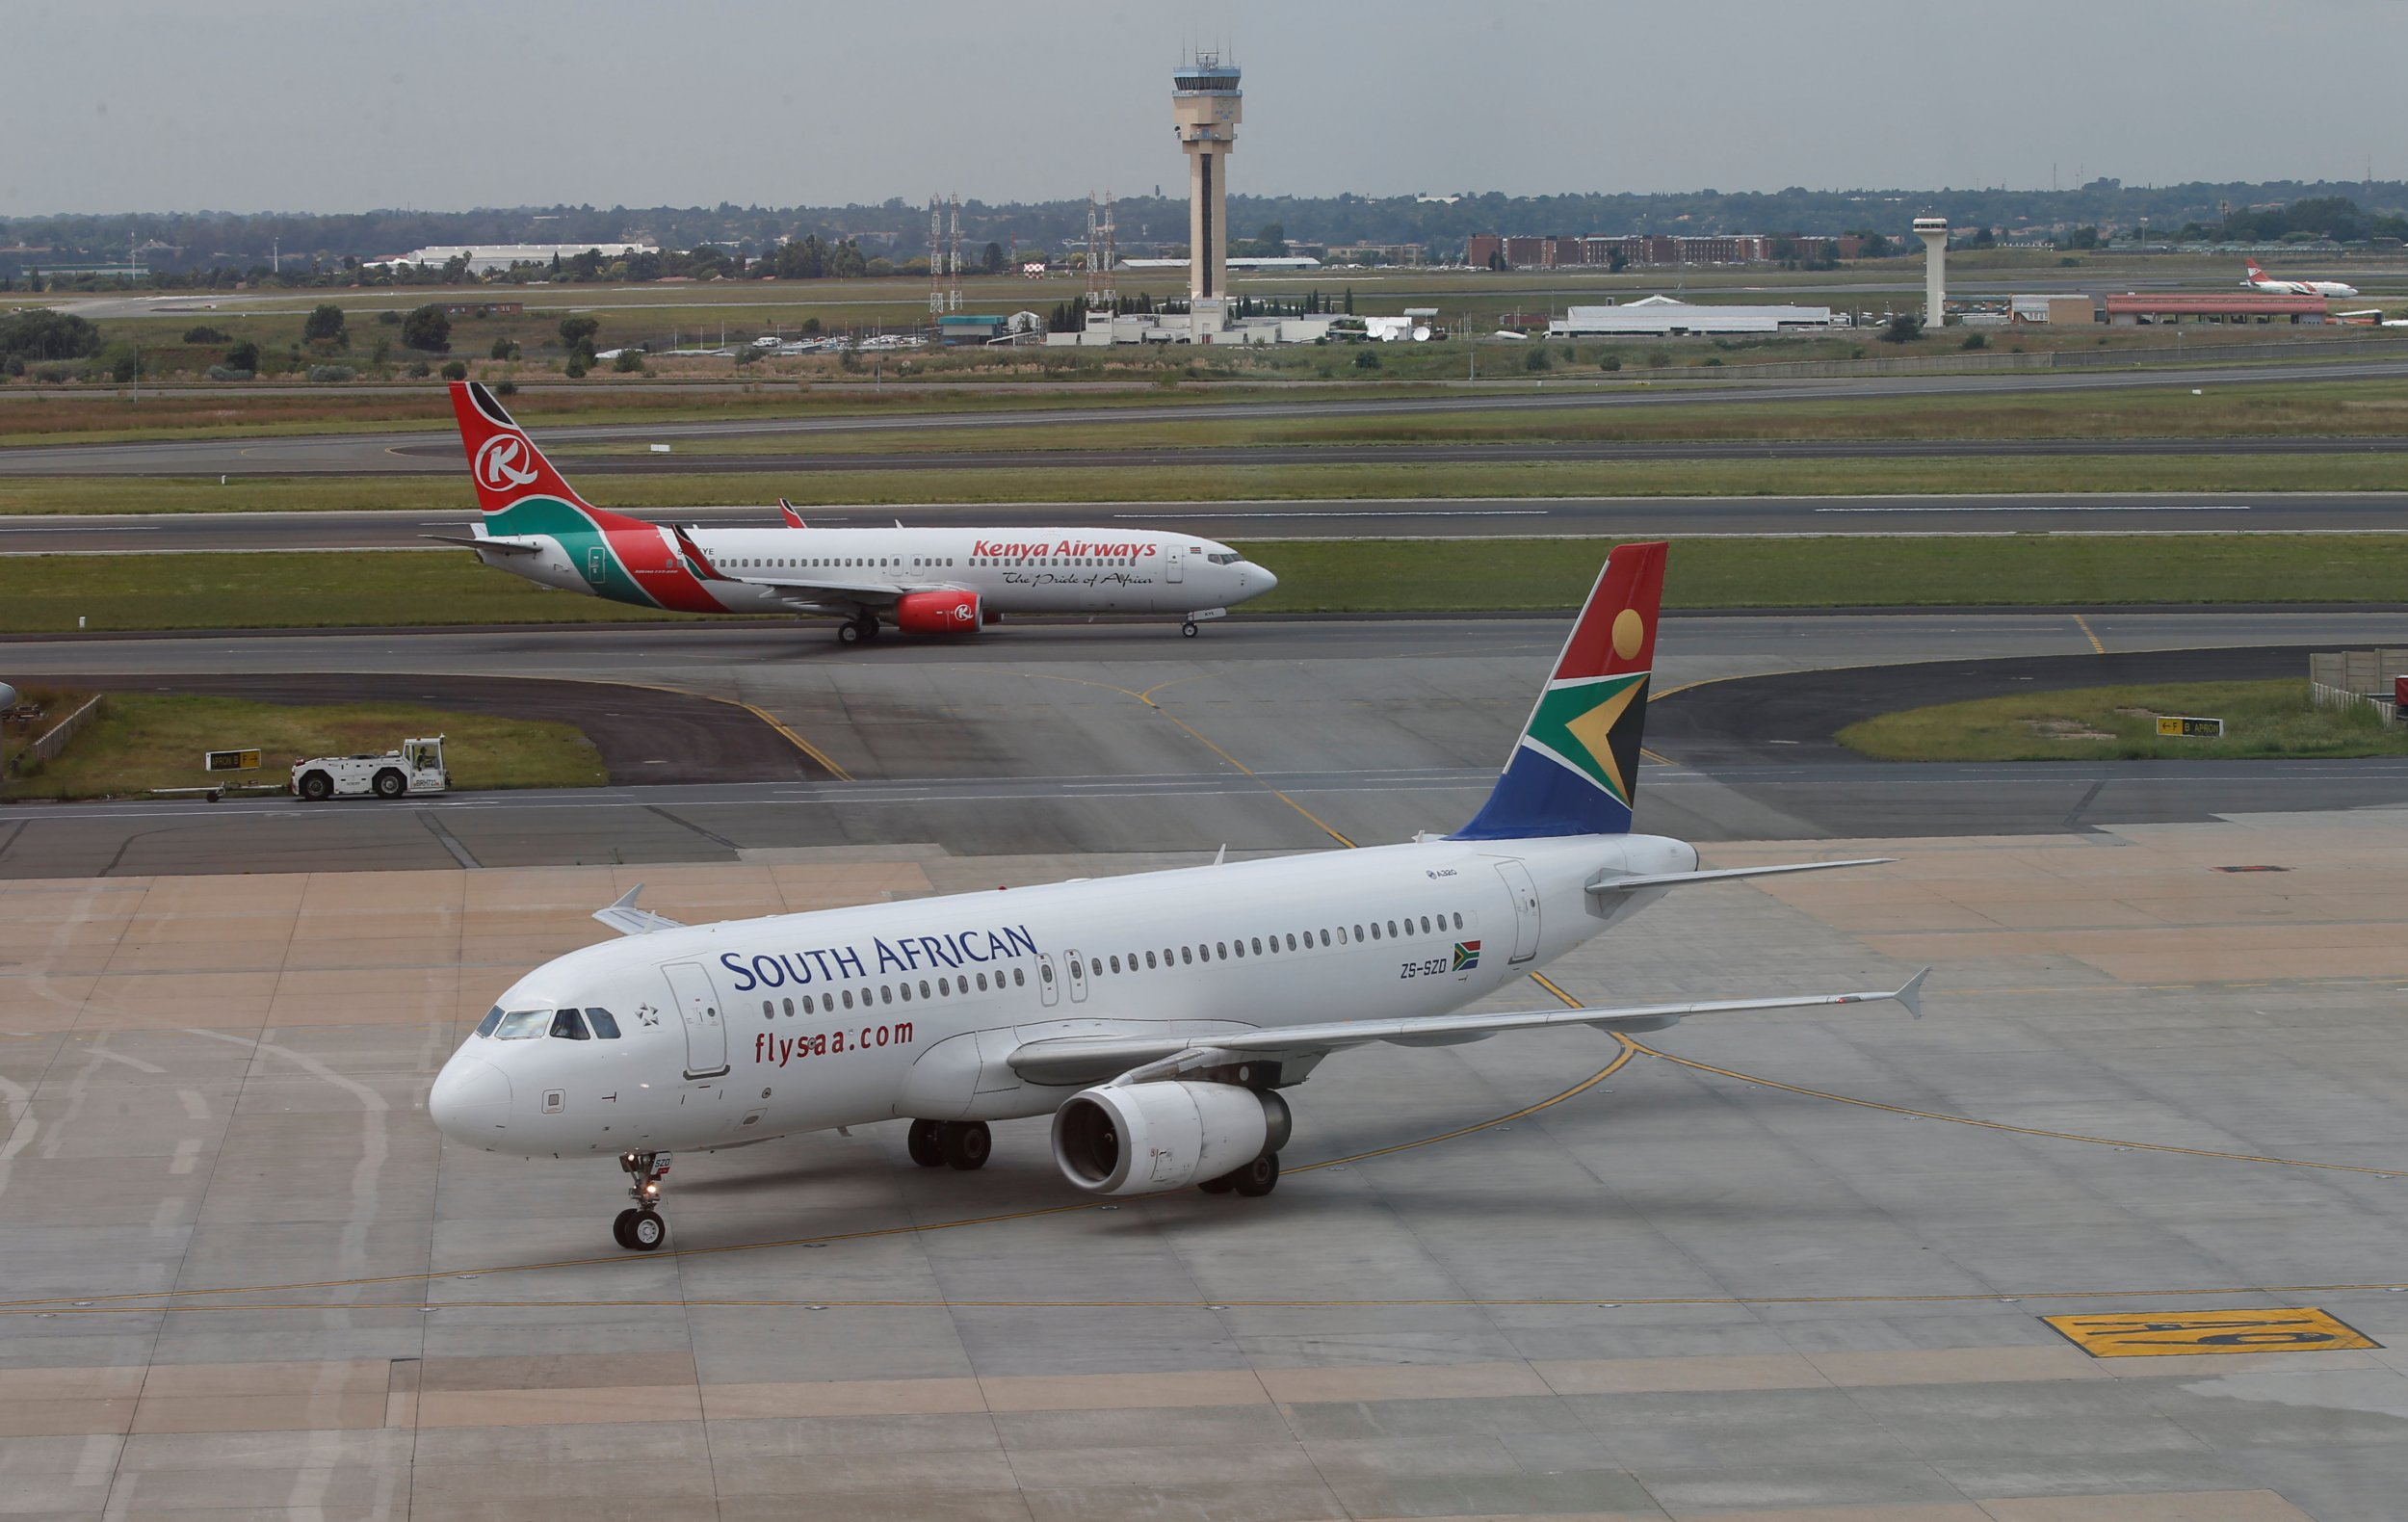 South Africa Airport Heist Suspect Arrested After Posting